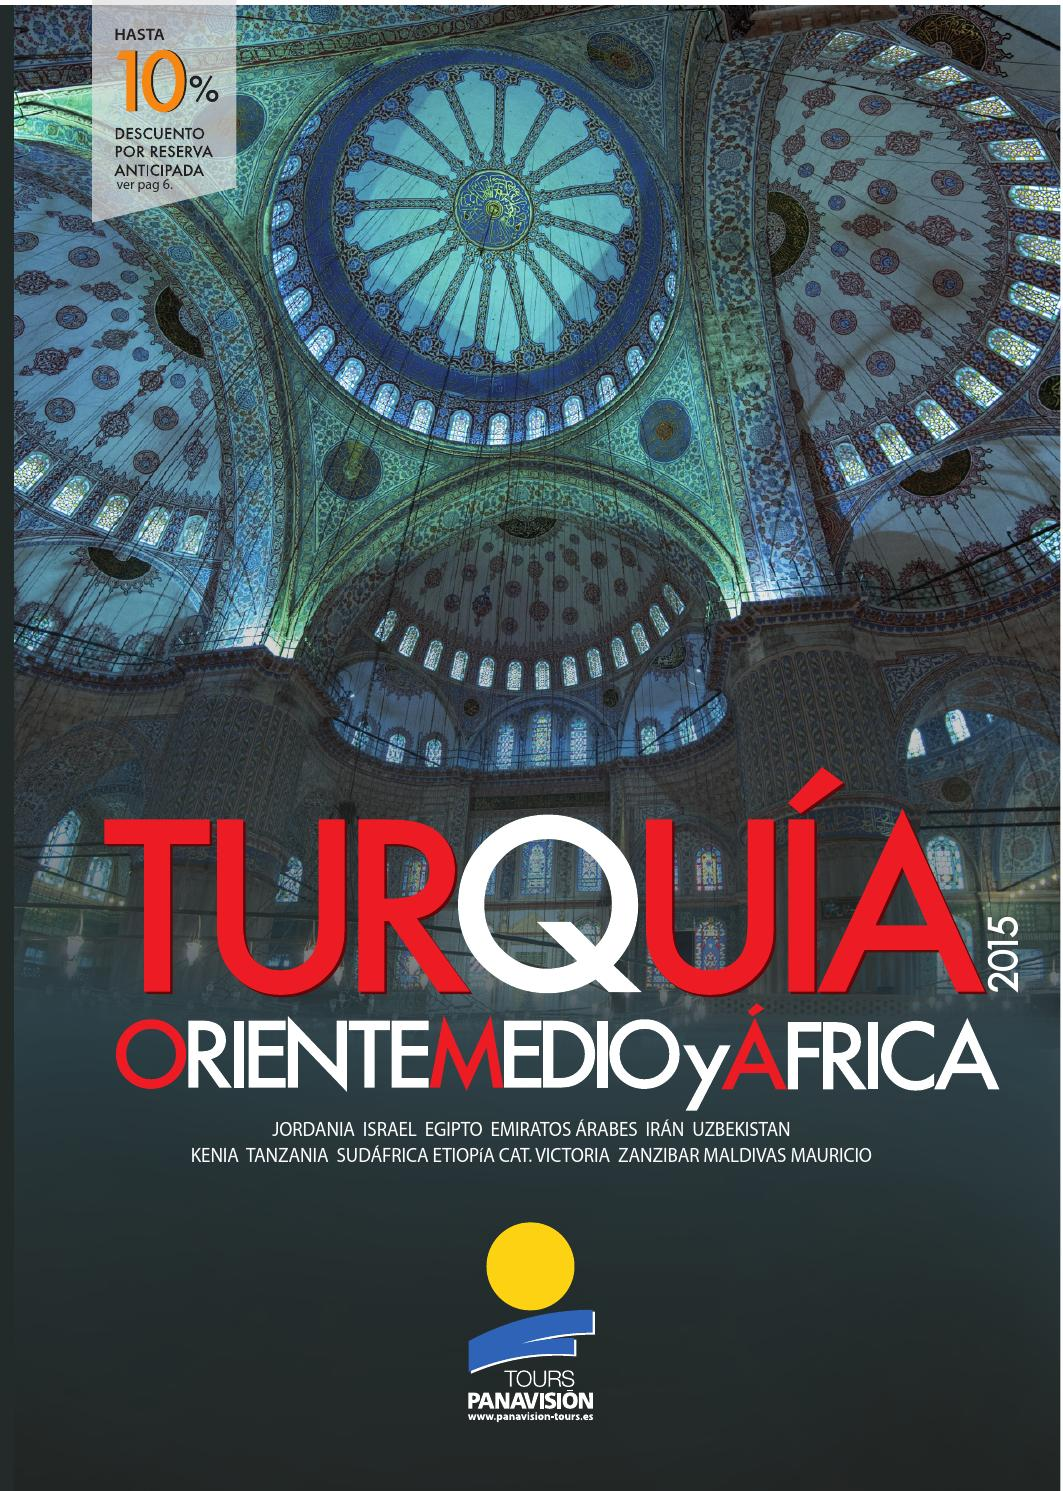 Turquía, Oriente Medio y África 2015 by Panavision Tours - issuu